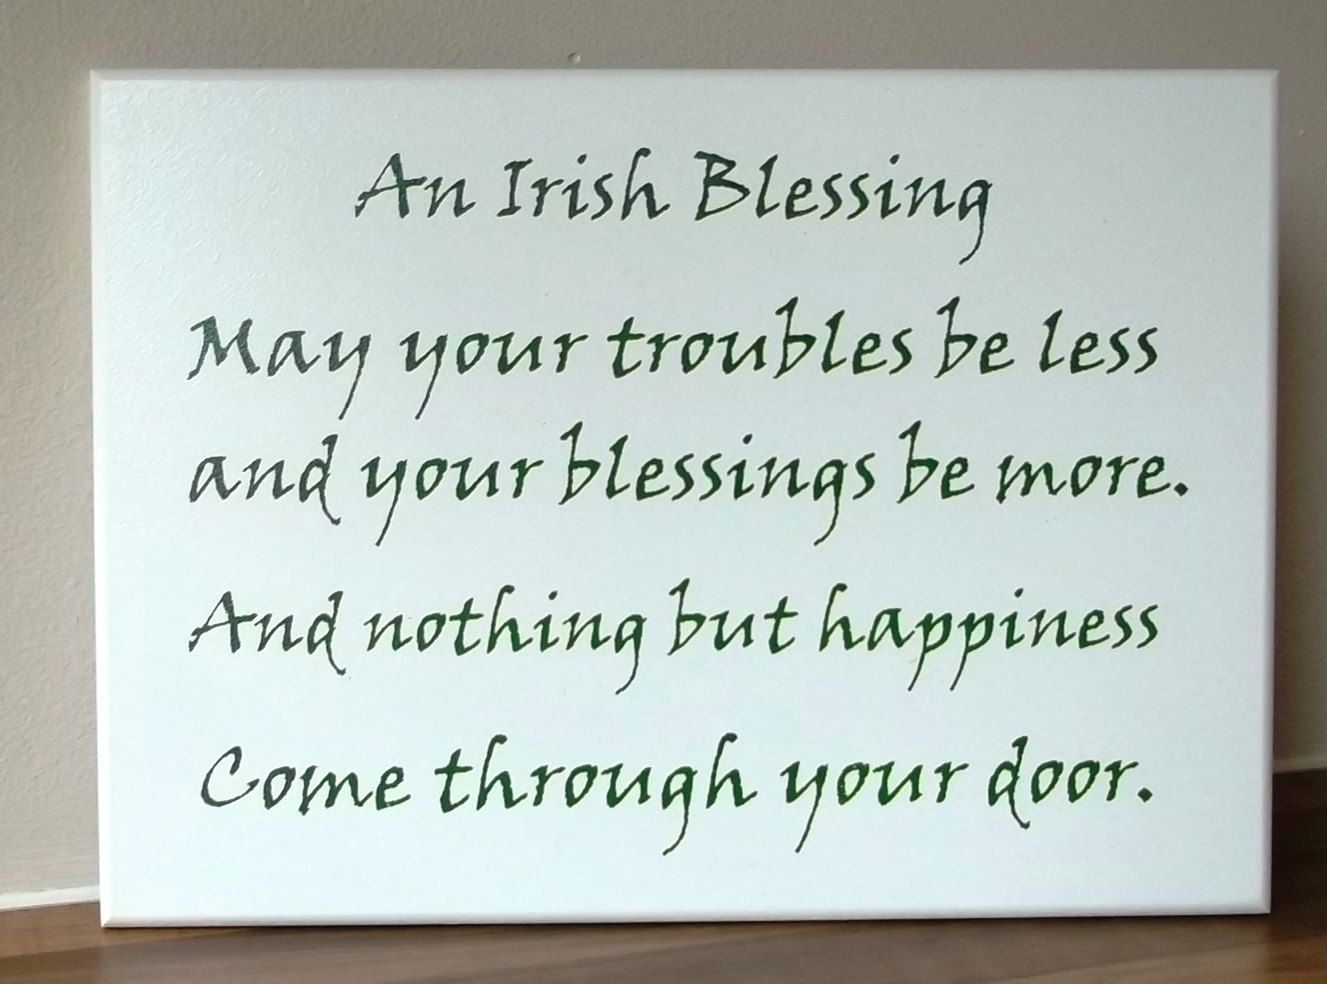 Irish Sign- Plaque- An Irish Blessing, May your troubles be less and your blessings be more, ST Patrick's Day Gift, Wedding ,Made In Ireland by Handmadeskproducts on Etsy